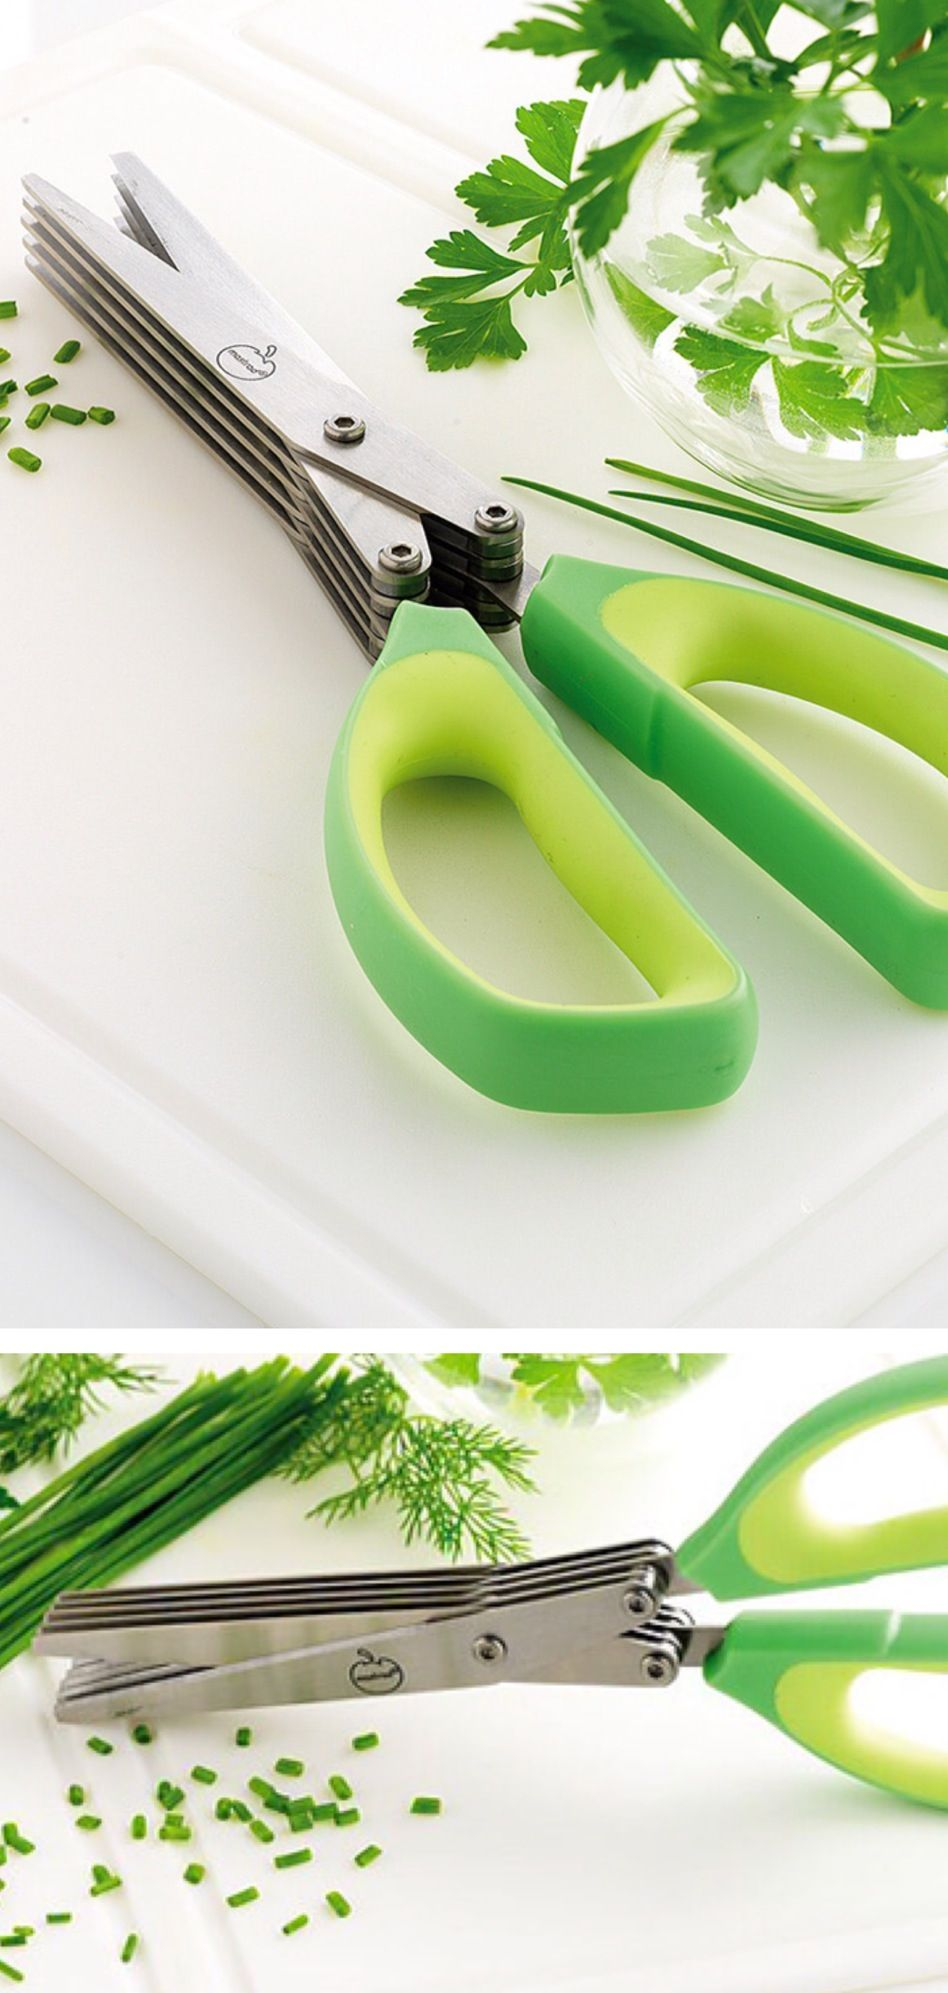 Herb Scissors // Cuts Herbs 5 Times Quicker (!)   Multiple Blades For  Herbs, Chives, Mushrooms, And More! #product_design